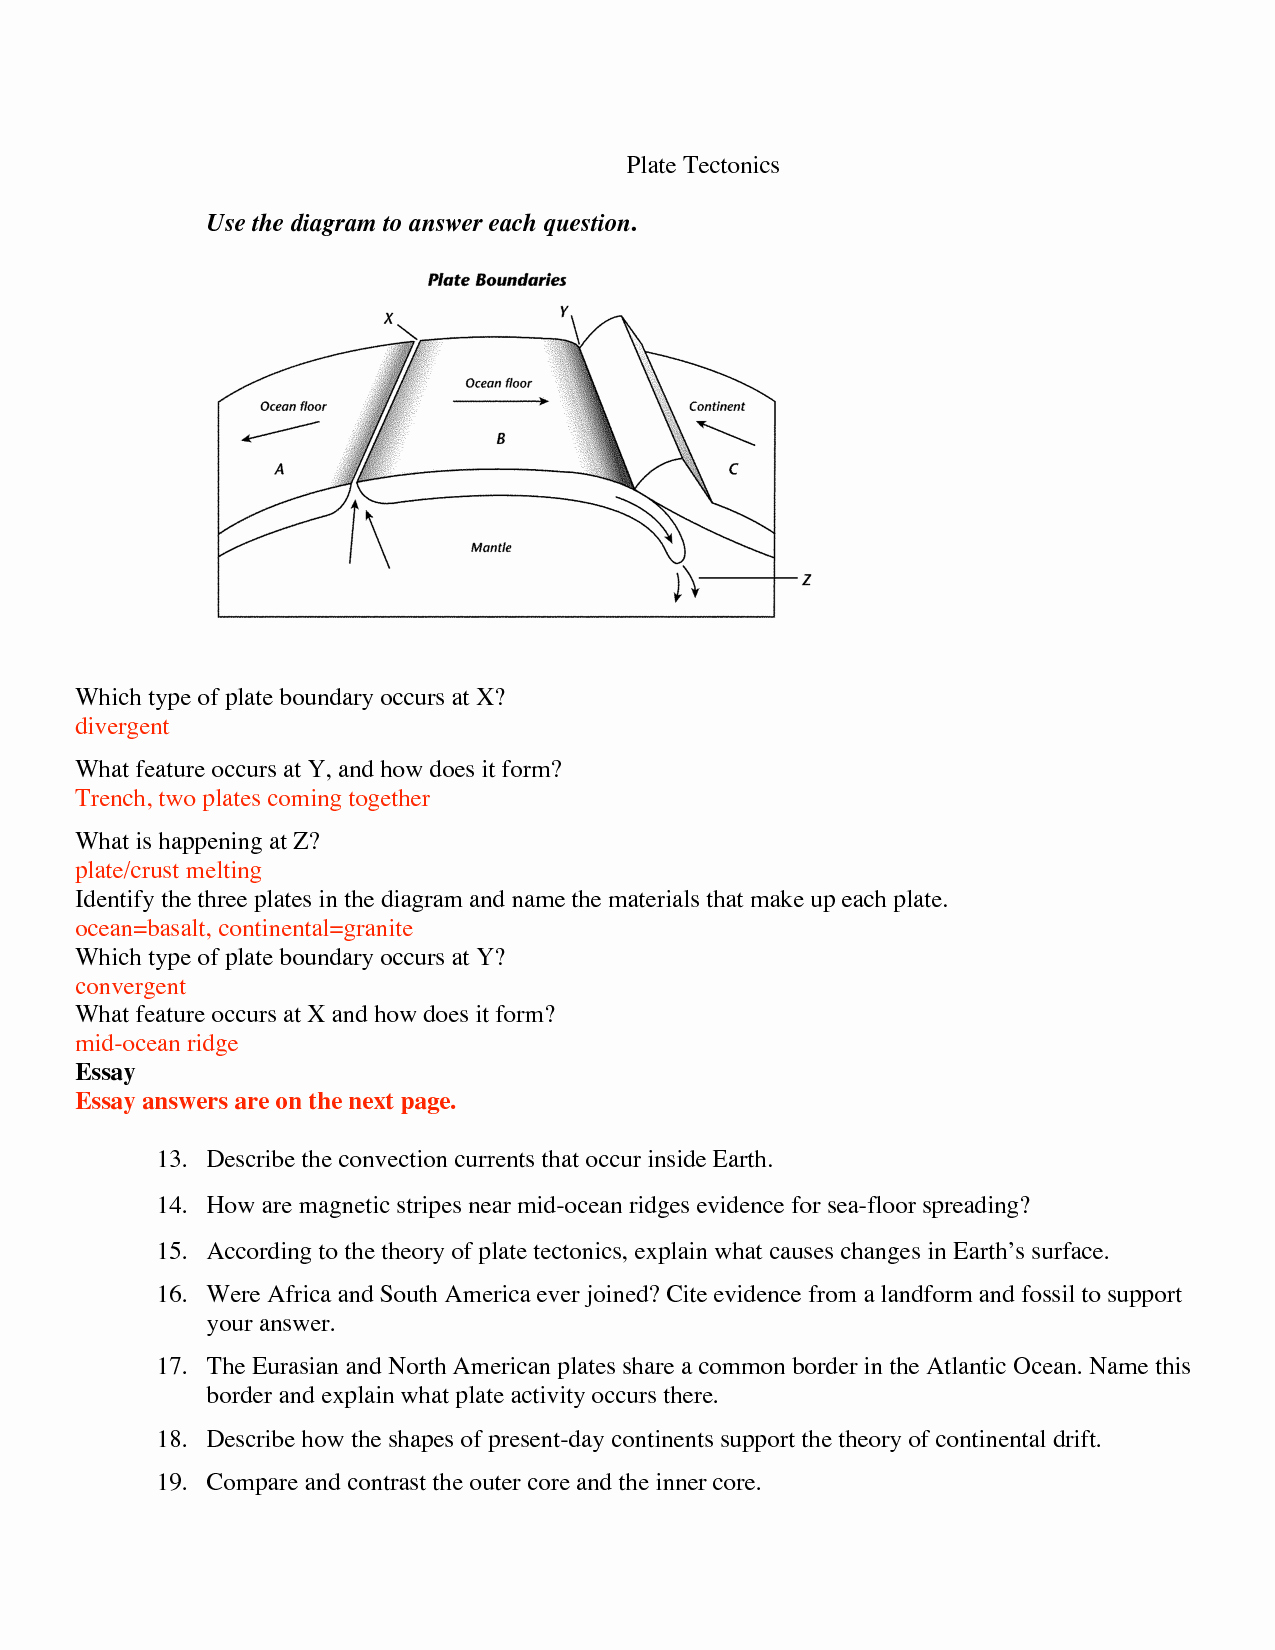 Plate Tectonics Worksheet Answers Lovely Subjunctive Mood Worksheets with Answers Keywordsfind